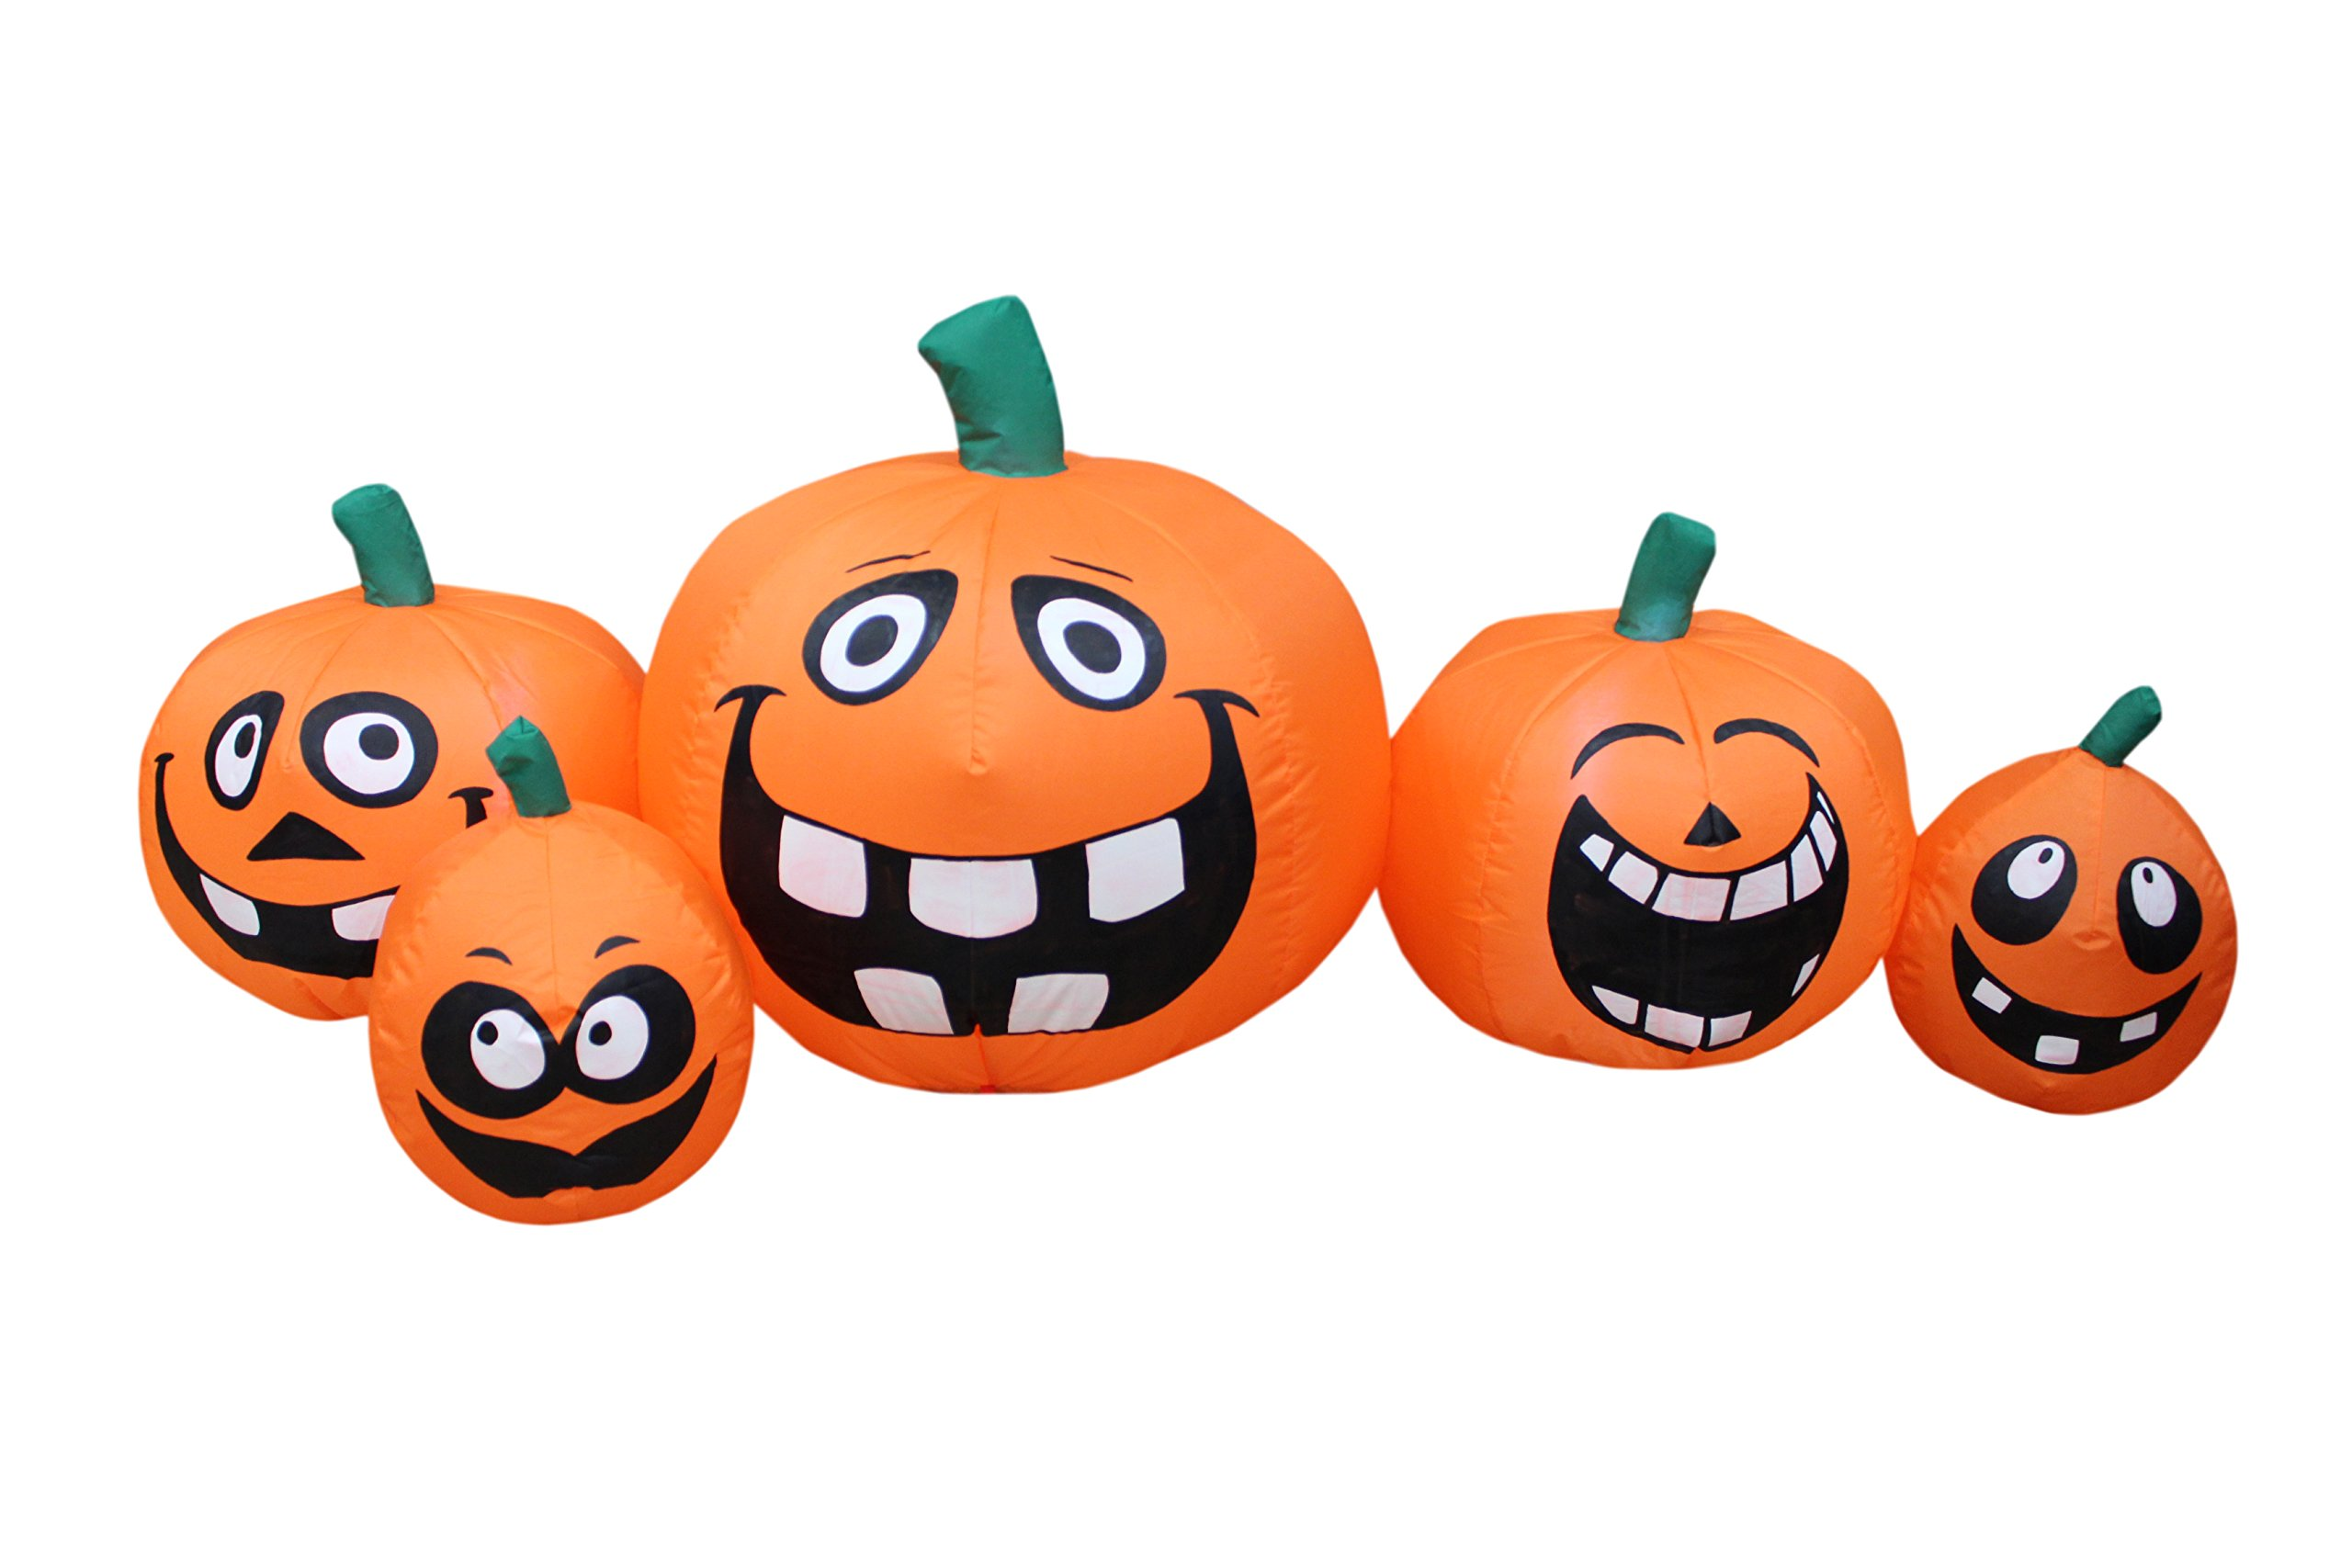 BZB Goods 5 Foot Wide Halloween Inflatable Funny Cute Pumpkins Patch LED Lights Decor Outdoor Indoor Holiday Decorations, Blow up Lighted Yard Decor, Lawn Inflatables Home Family Outside